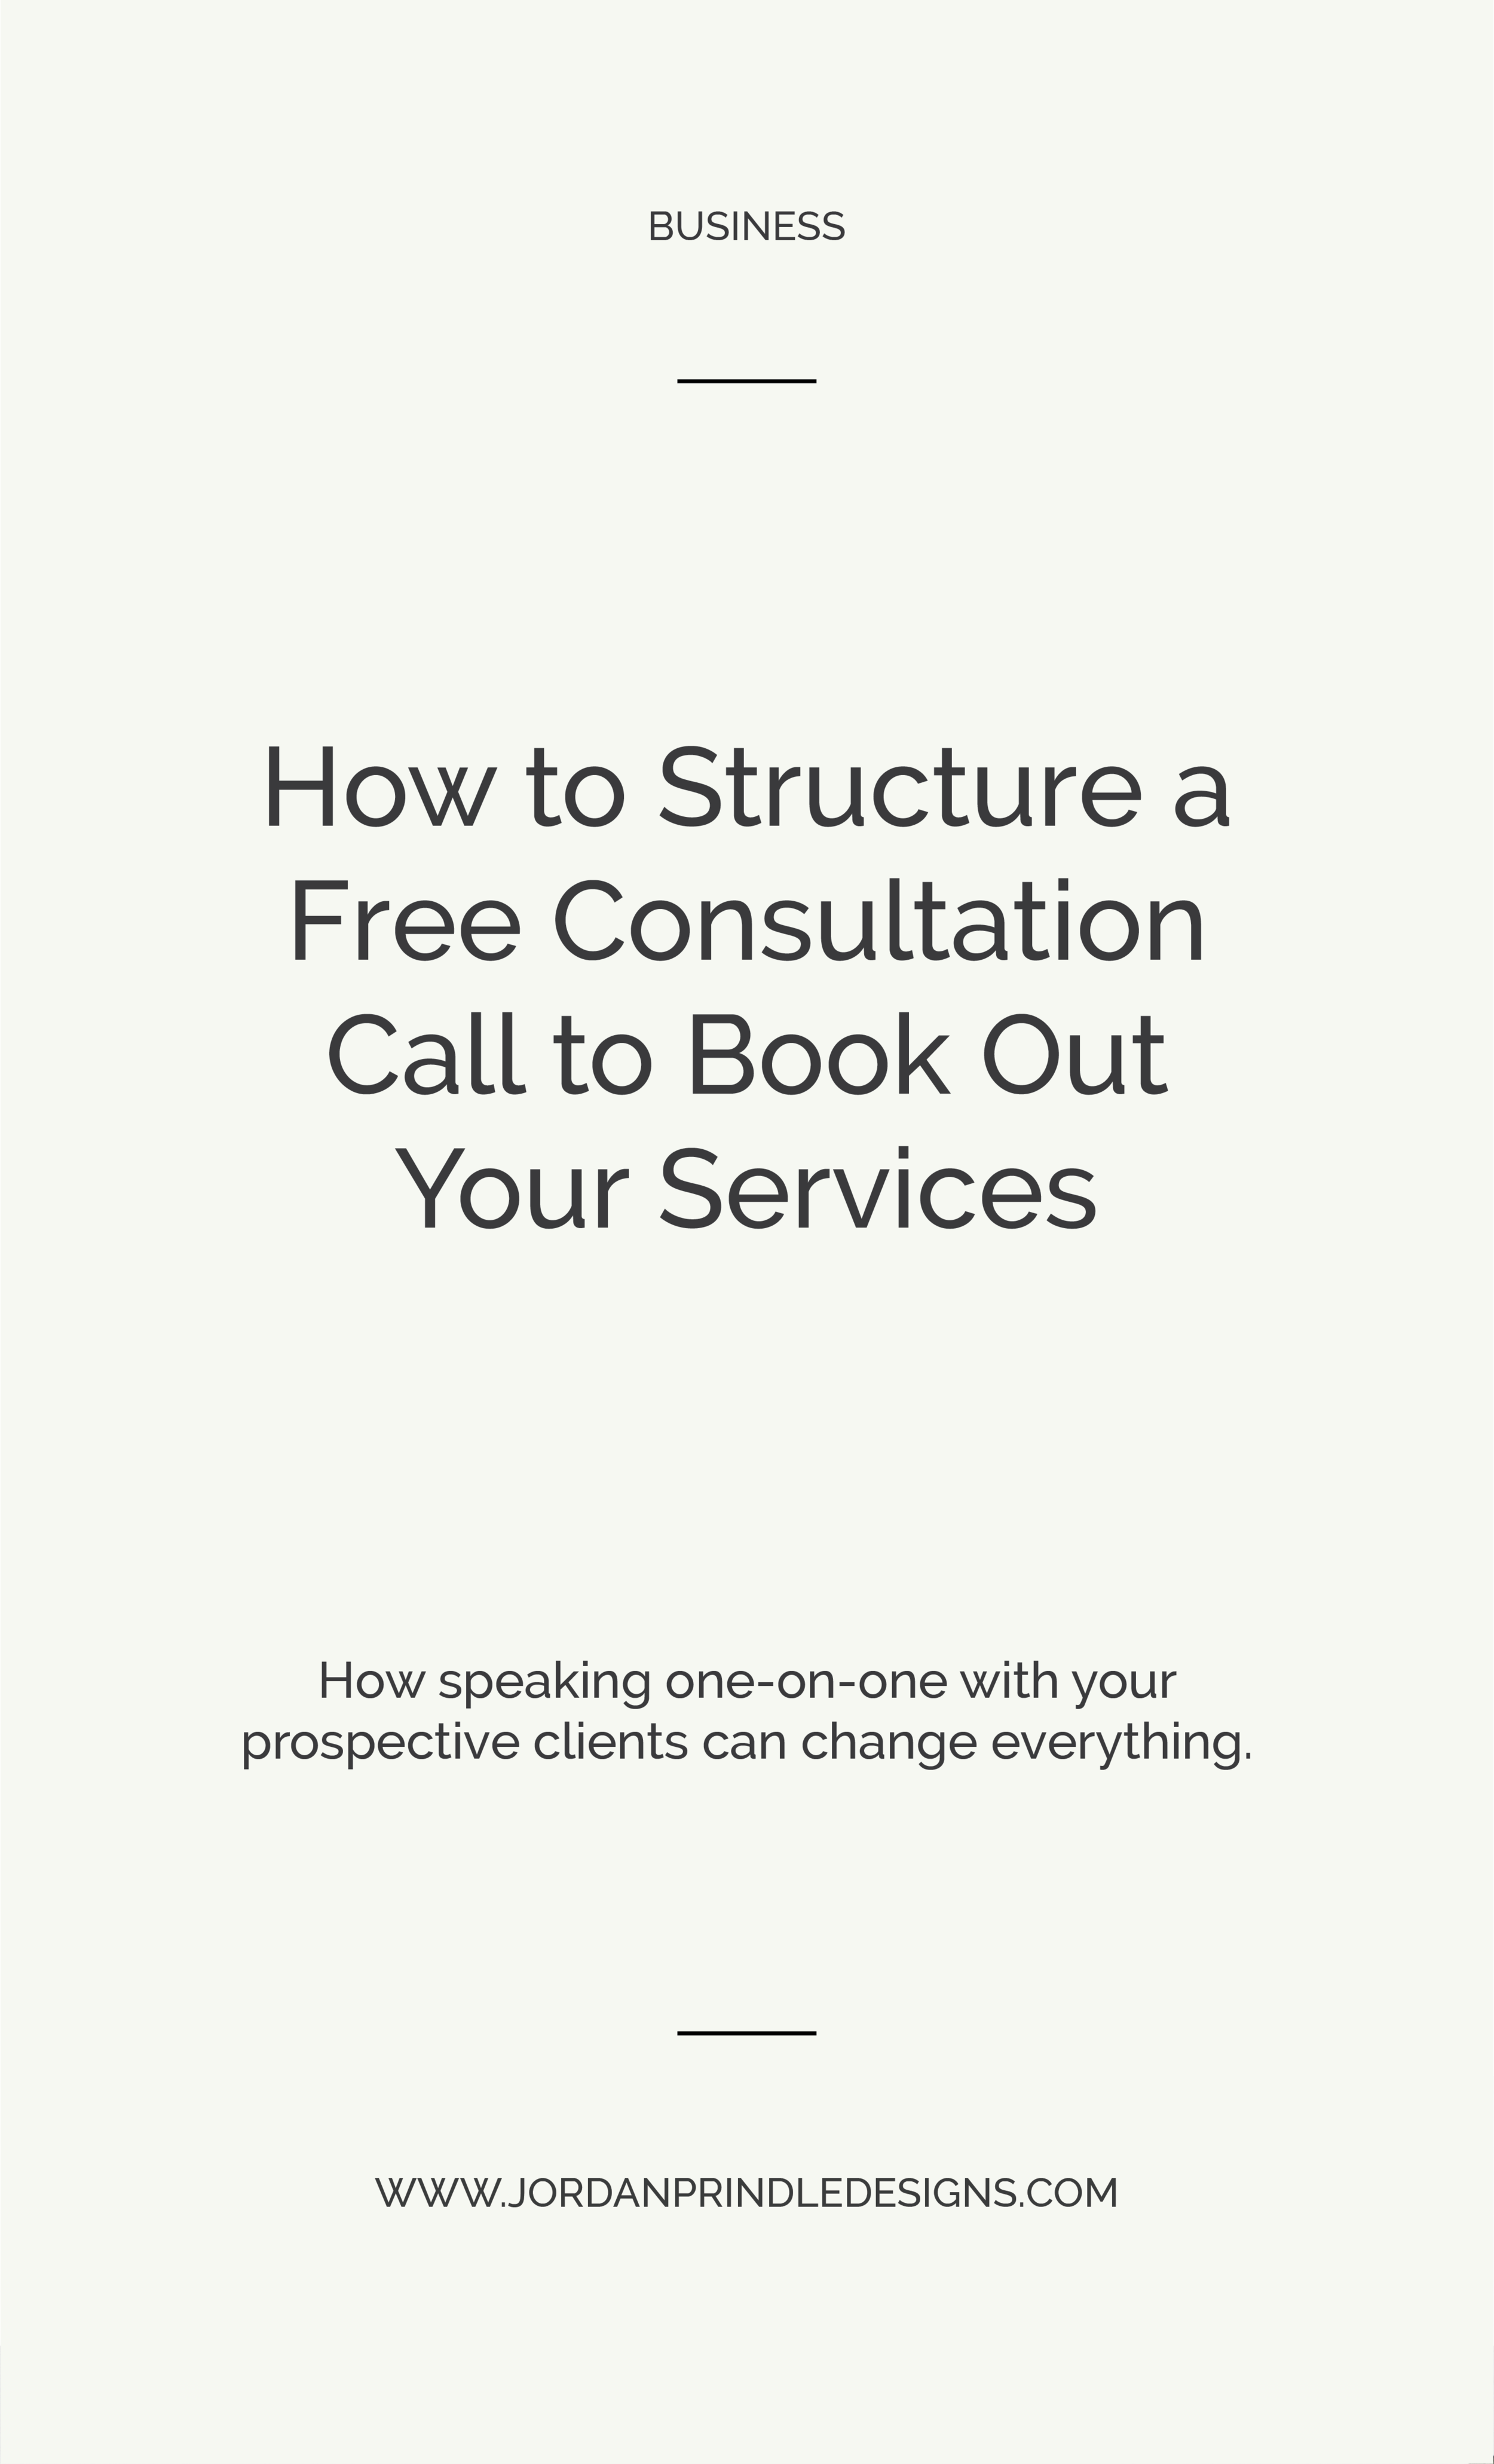 How to Structure A Free Consultation Call to Book Out Your Services | With 5 simple steps, you can take your creative business from stagnant to booked out. Read the full blog post at www.jordanprindledesigns.com #branddesign #creativeentrepreneur #webdesign